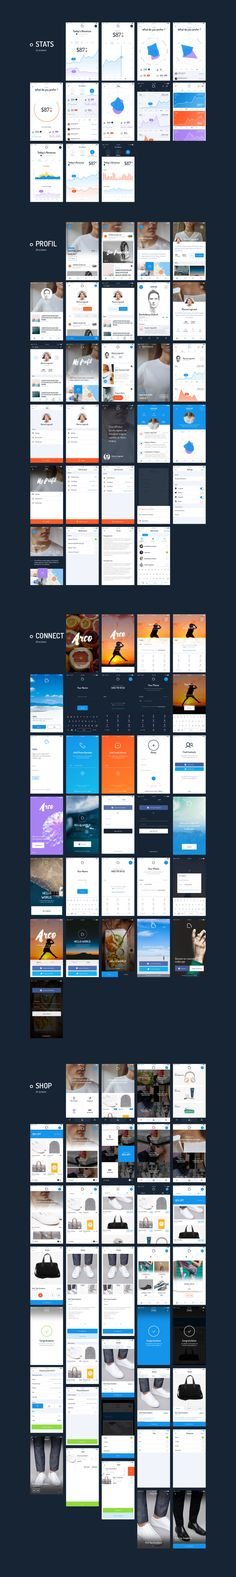 Arco - Mobile UI Kit by MarketMe on @creativemarket Mobile Ui Design, App Ui Design, Interface Design, User Interface, Motion Design, Visual Hierarchy, Ui Components, Ios Ui, App Design Inspiration